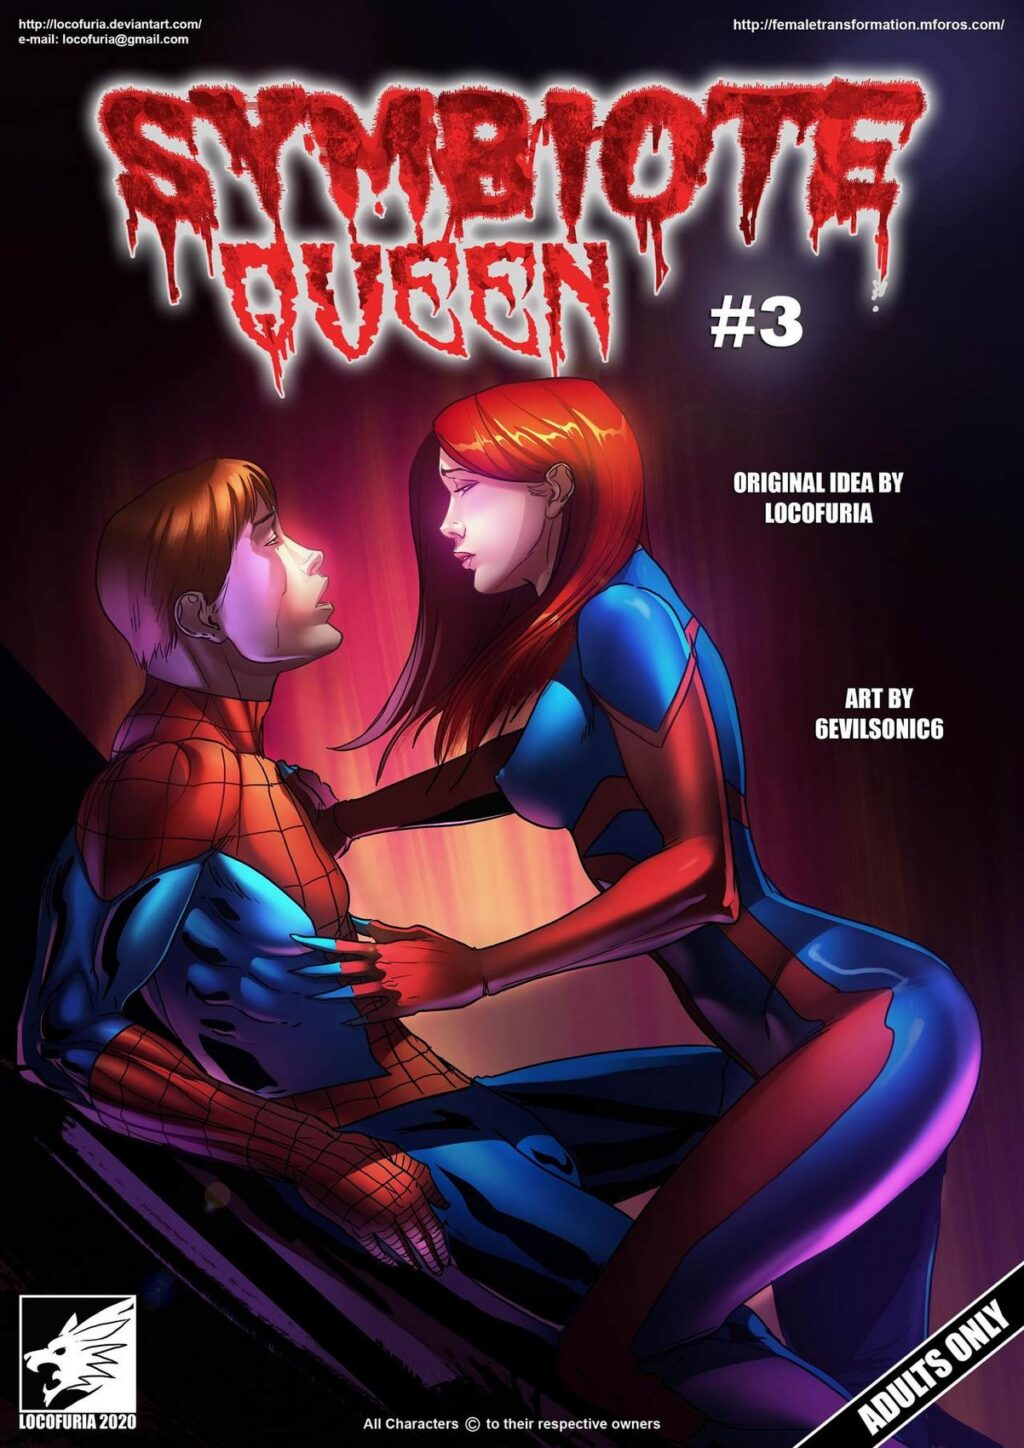 Marvel-Porn-Comics-Mary-Jane-Gang-rape-orgy-Bondage-BDSM-Creature-Cuties-Venom-Carnage-Spider-man-parasite-sexy-slimes-Turned-out-mind-control-Symbiote-Queen-#-3-groupe-viol-orgie-Bondage-BDSM-Créature-Cuties-Venom-Carnage-Spider-man-parasite-sexy-slimes-s'est-avéré-contrôle-de-l'esprit